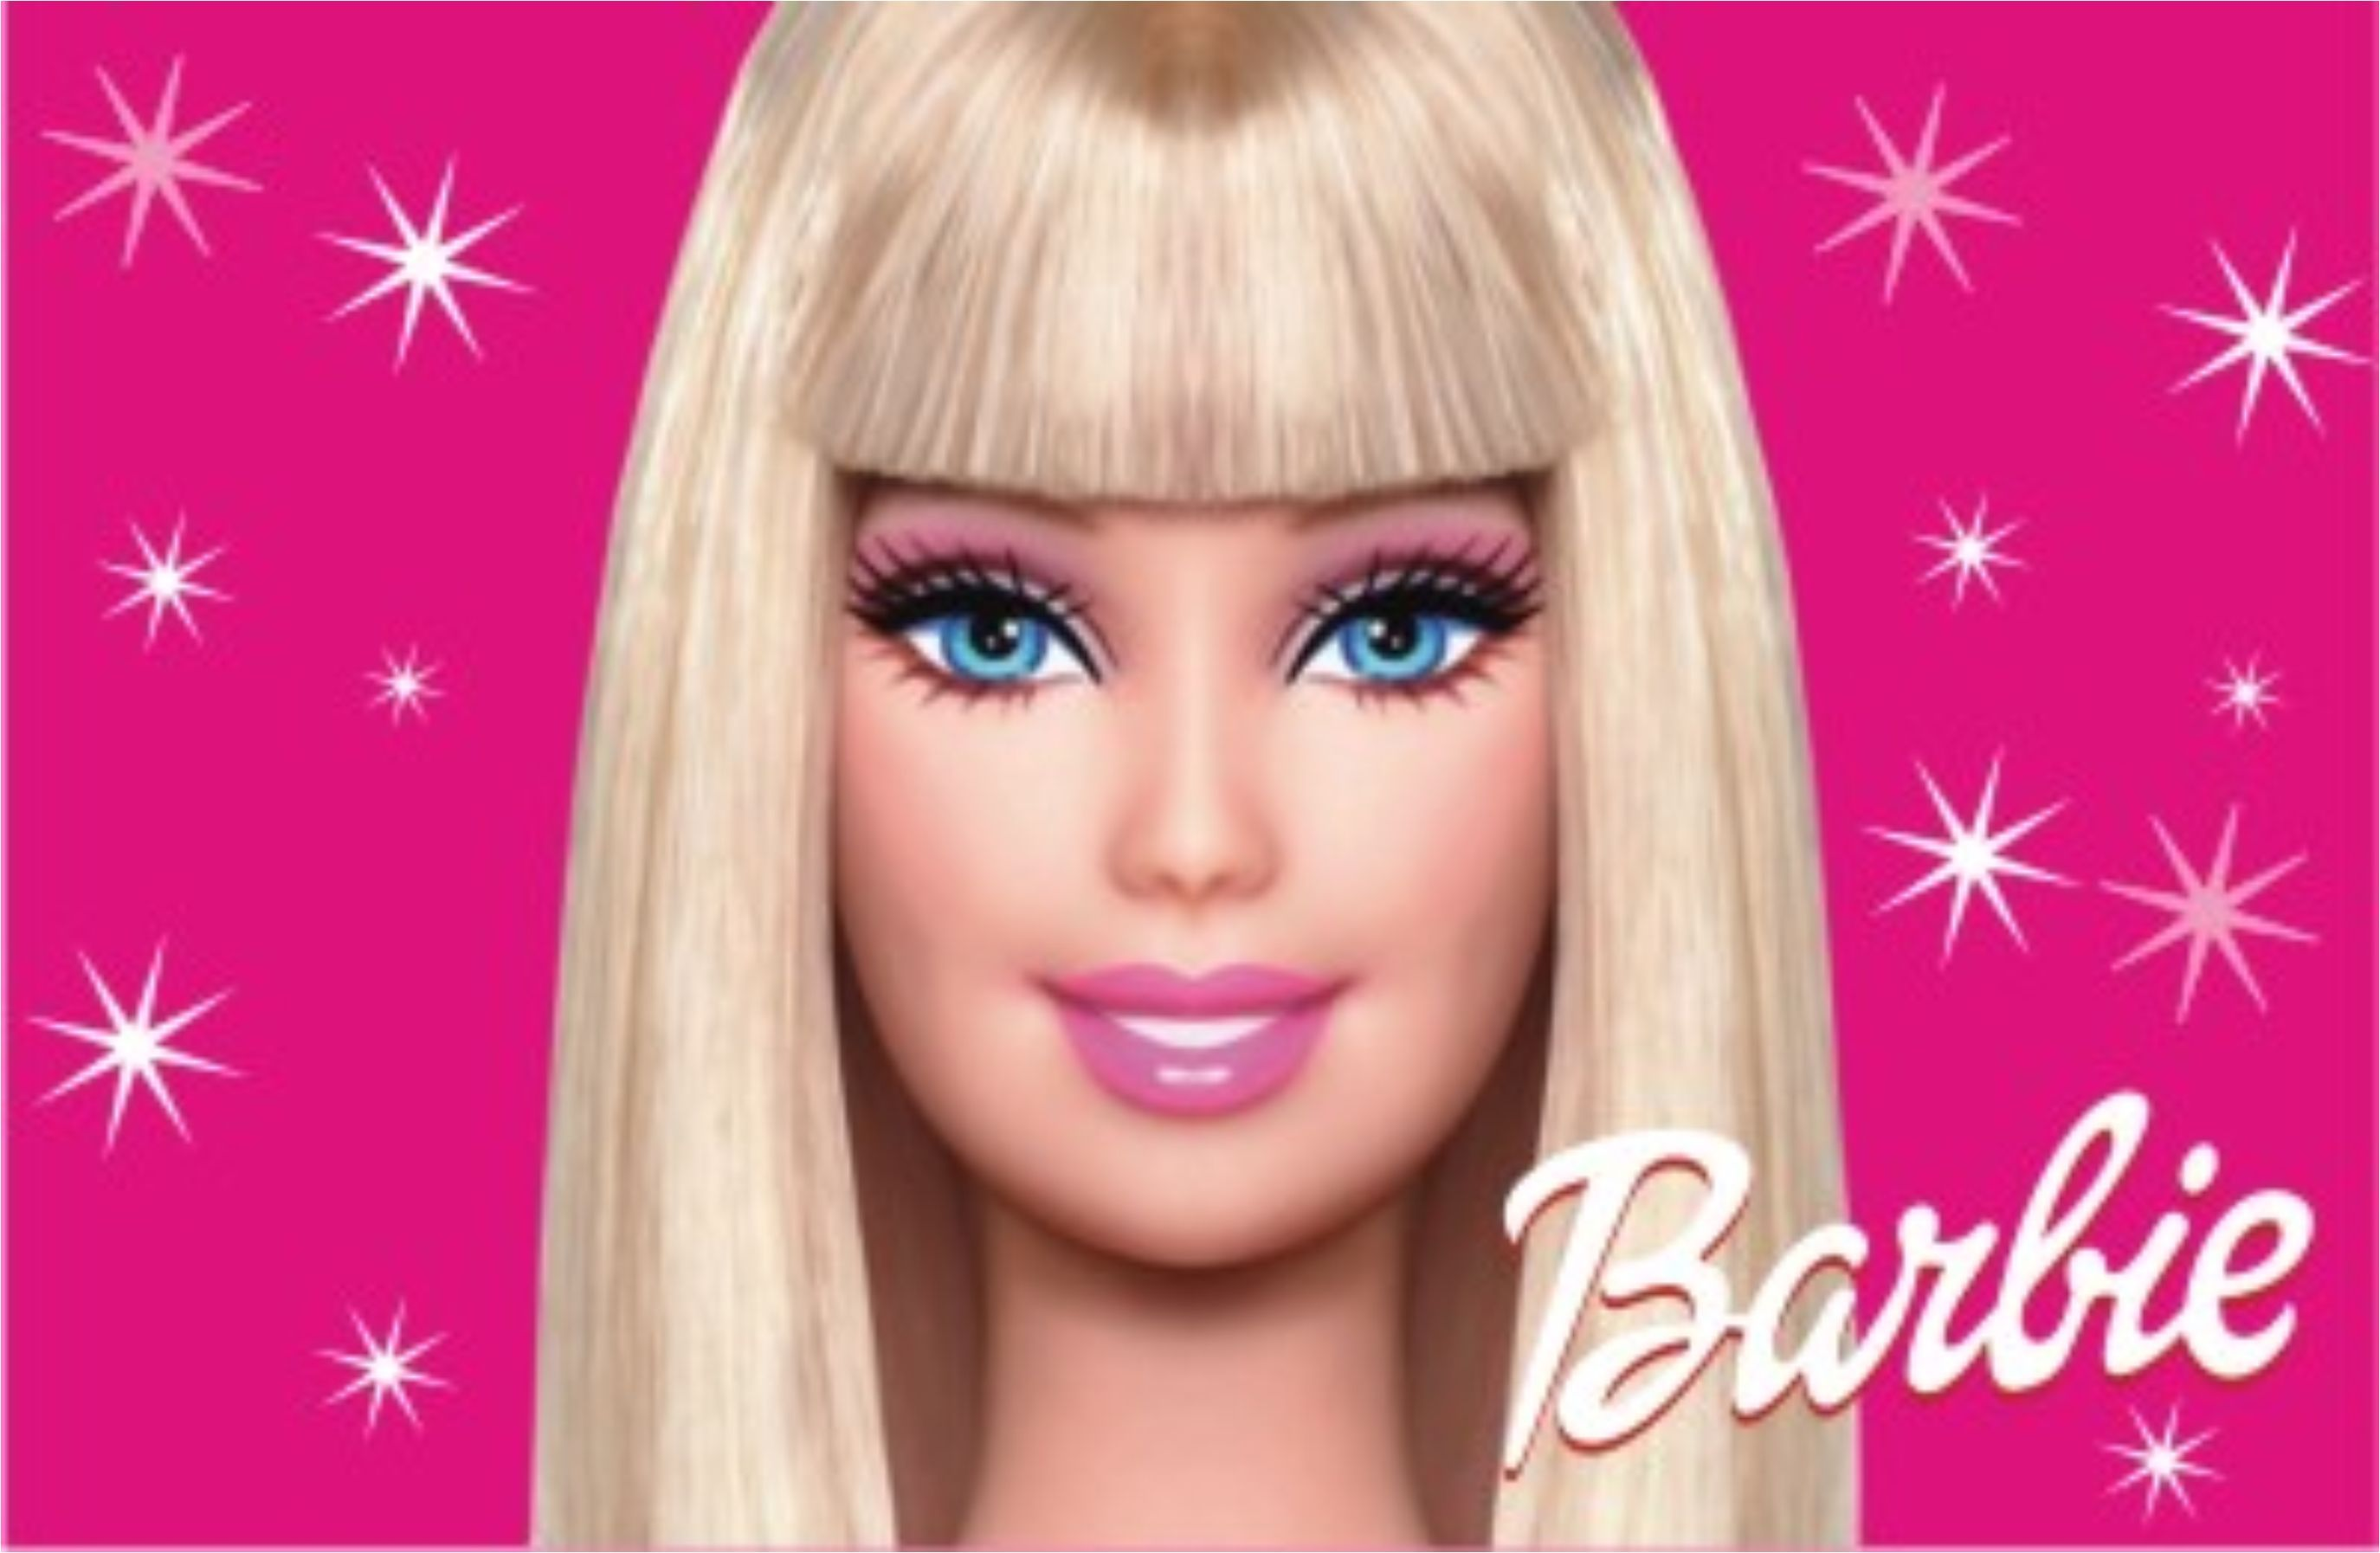 Barbie – Será?